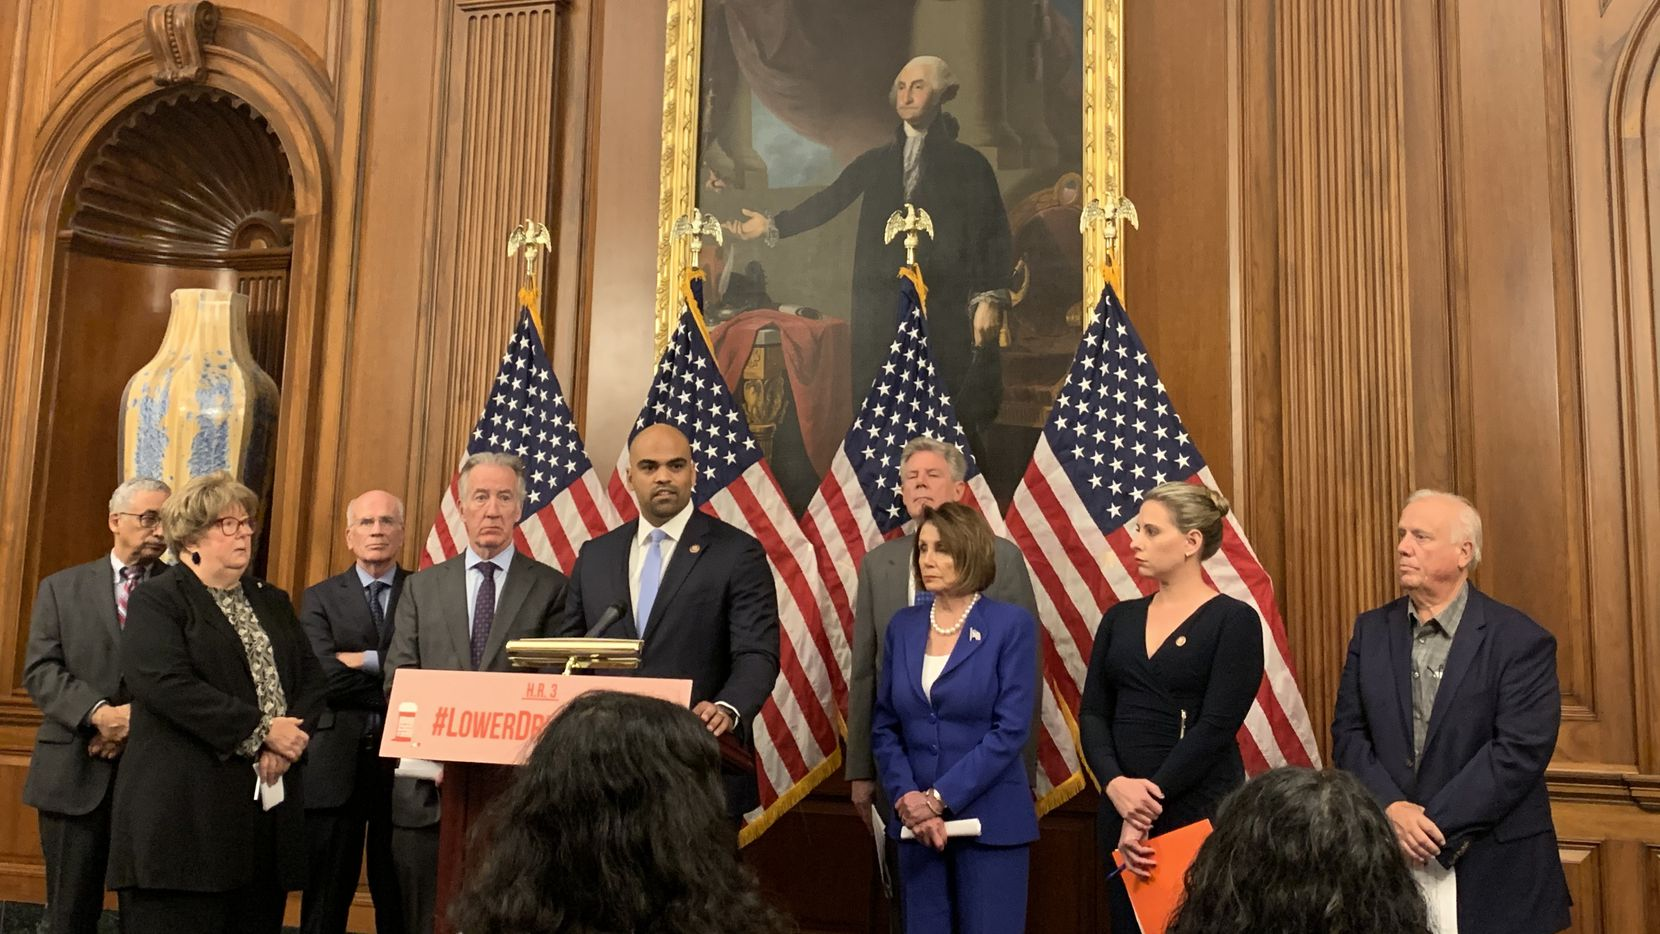 Rep. Colin Allred, D-Dallas, attends a news conference about a bill to lower the cost of prescription drugs with House Speaker Nancy Pelosi (right) and others at the Capitol on Wednesday, Oct. 16, 2019, in Washington, D.C.